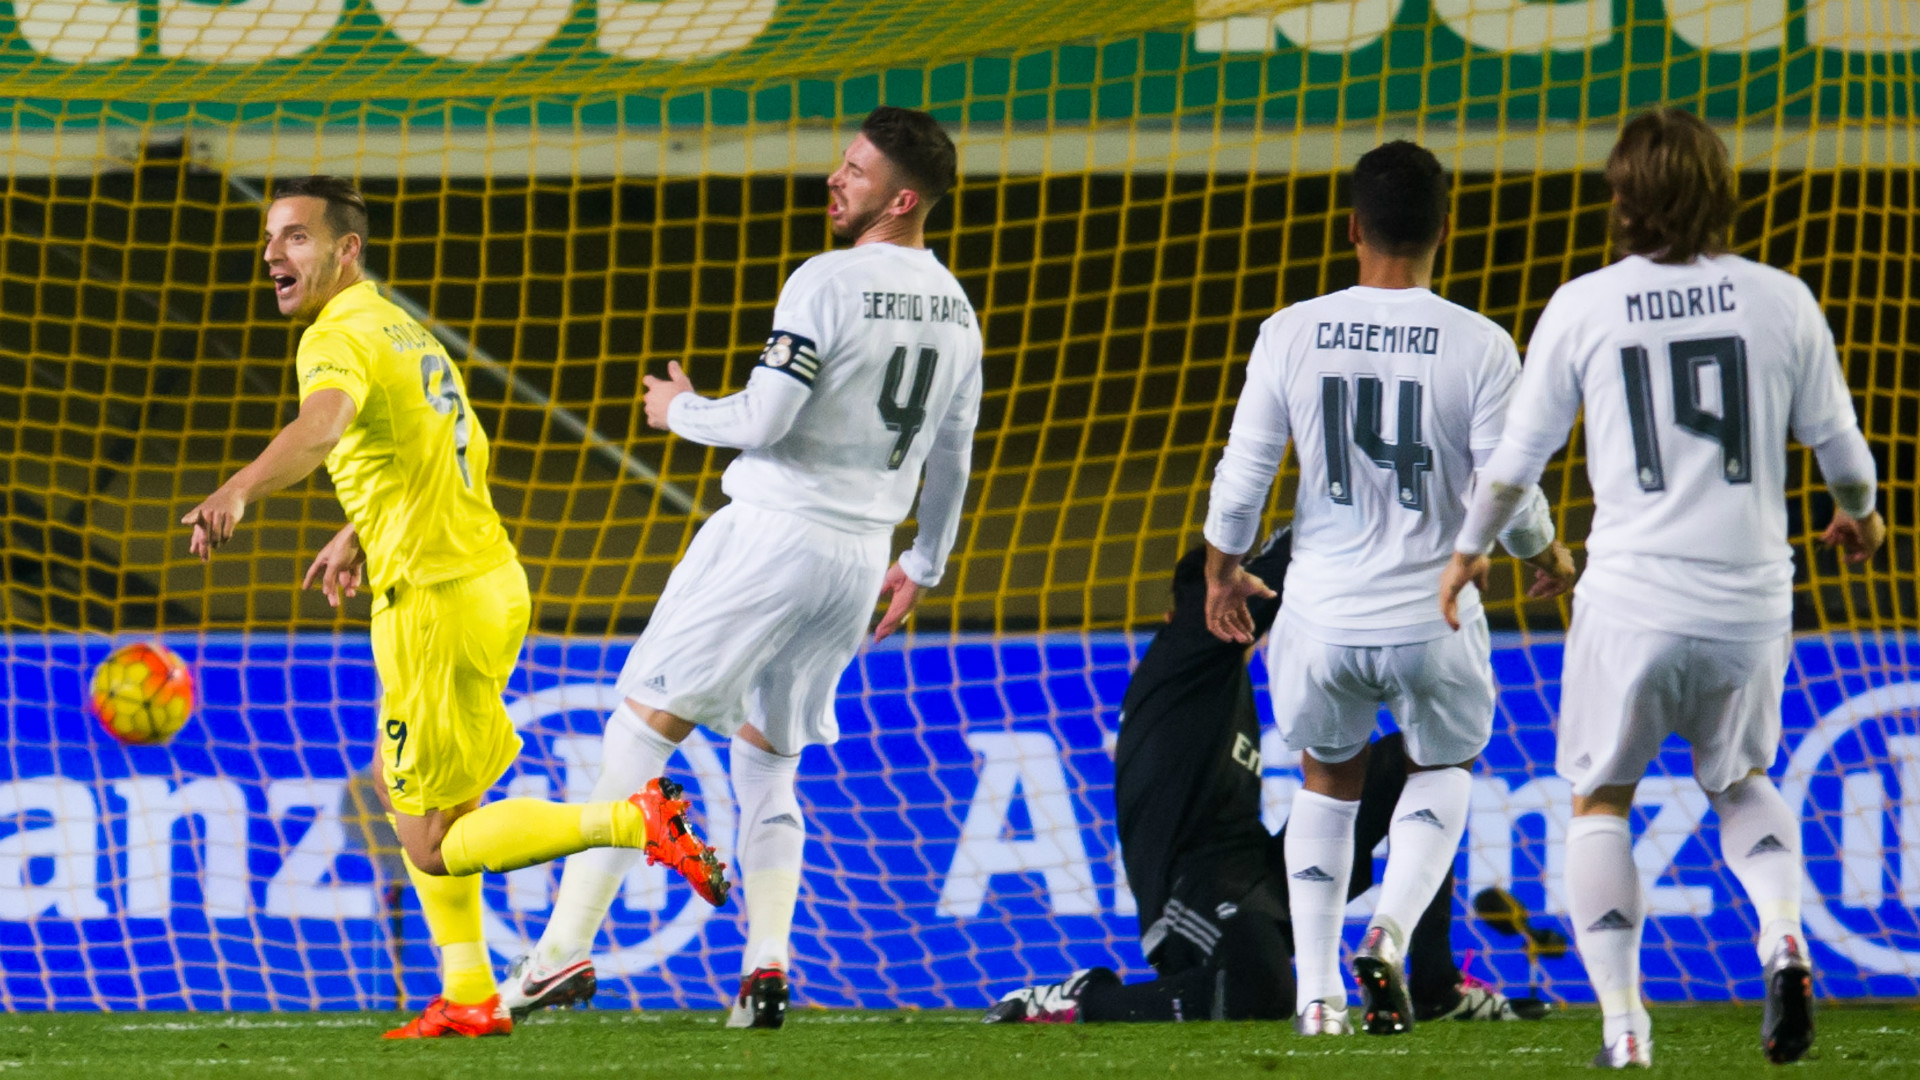 Video: Villarreal vs Real Madrid